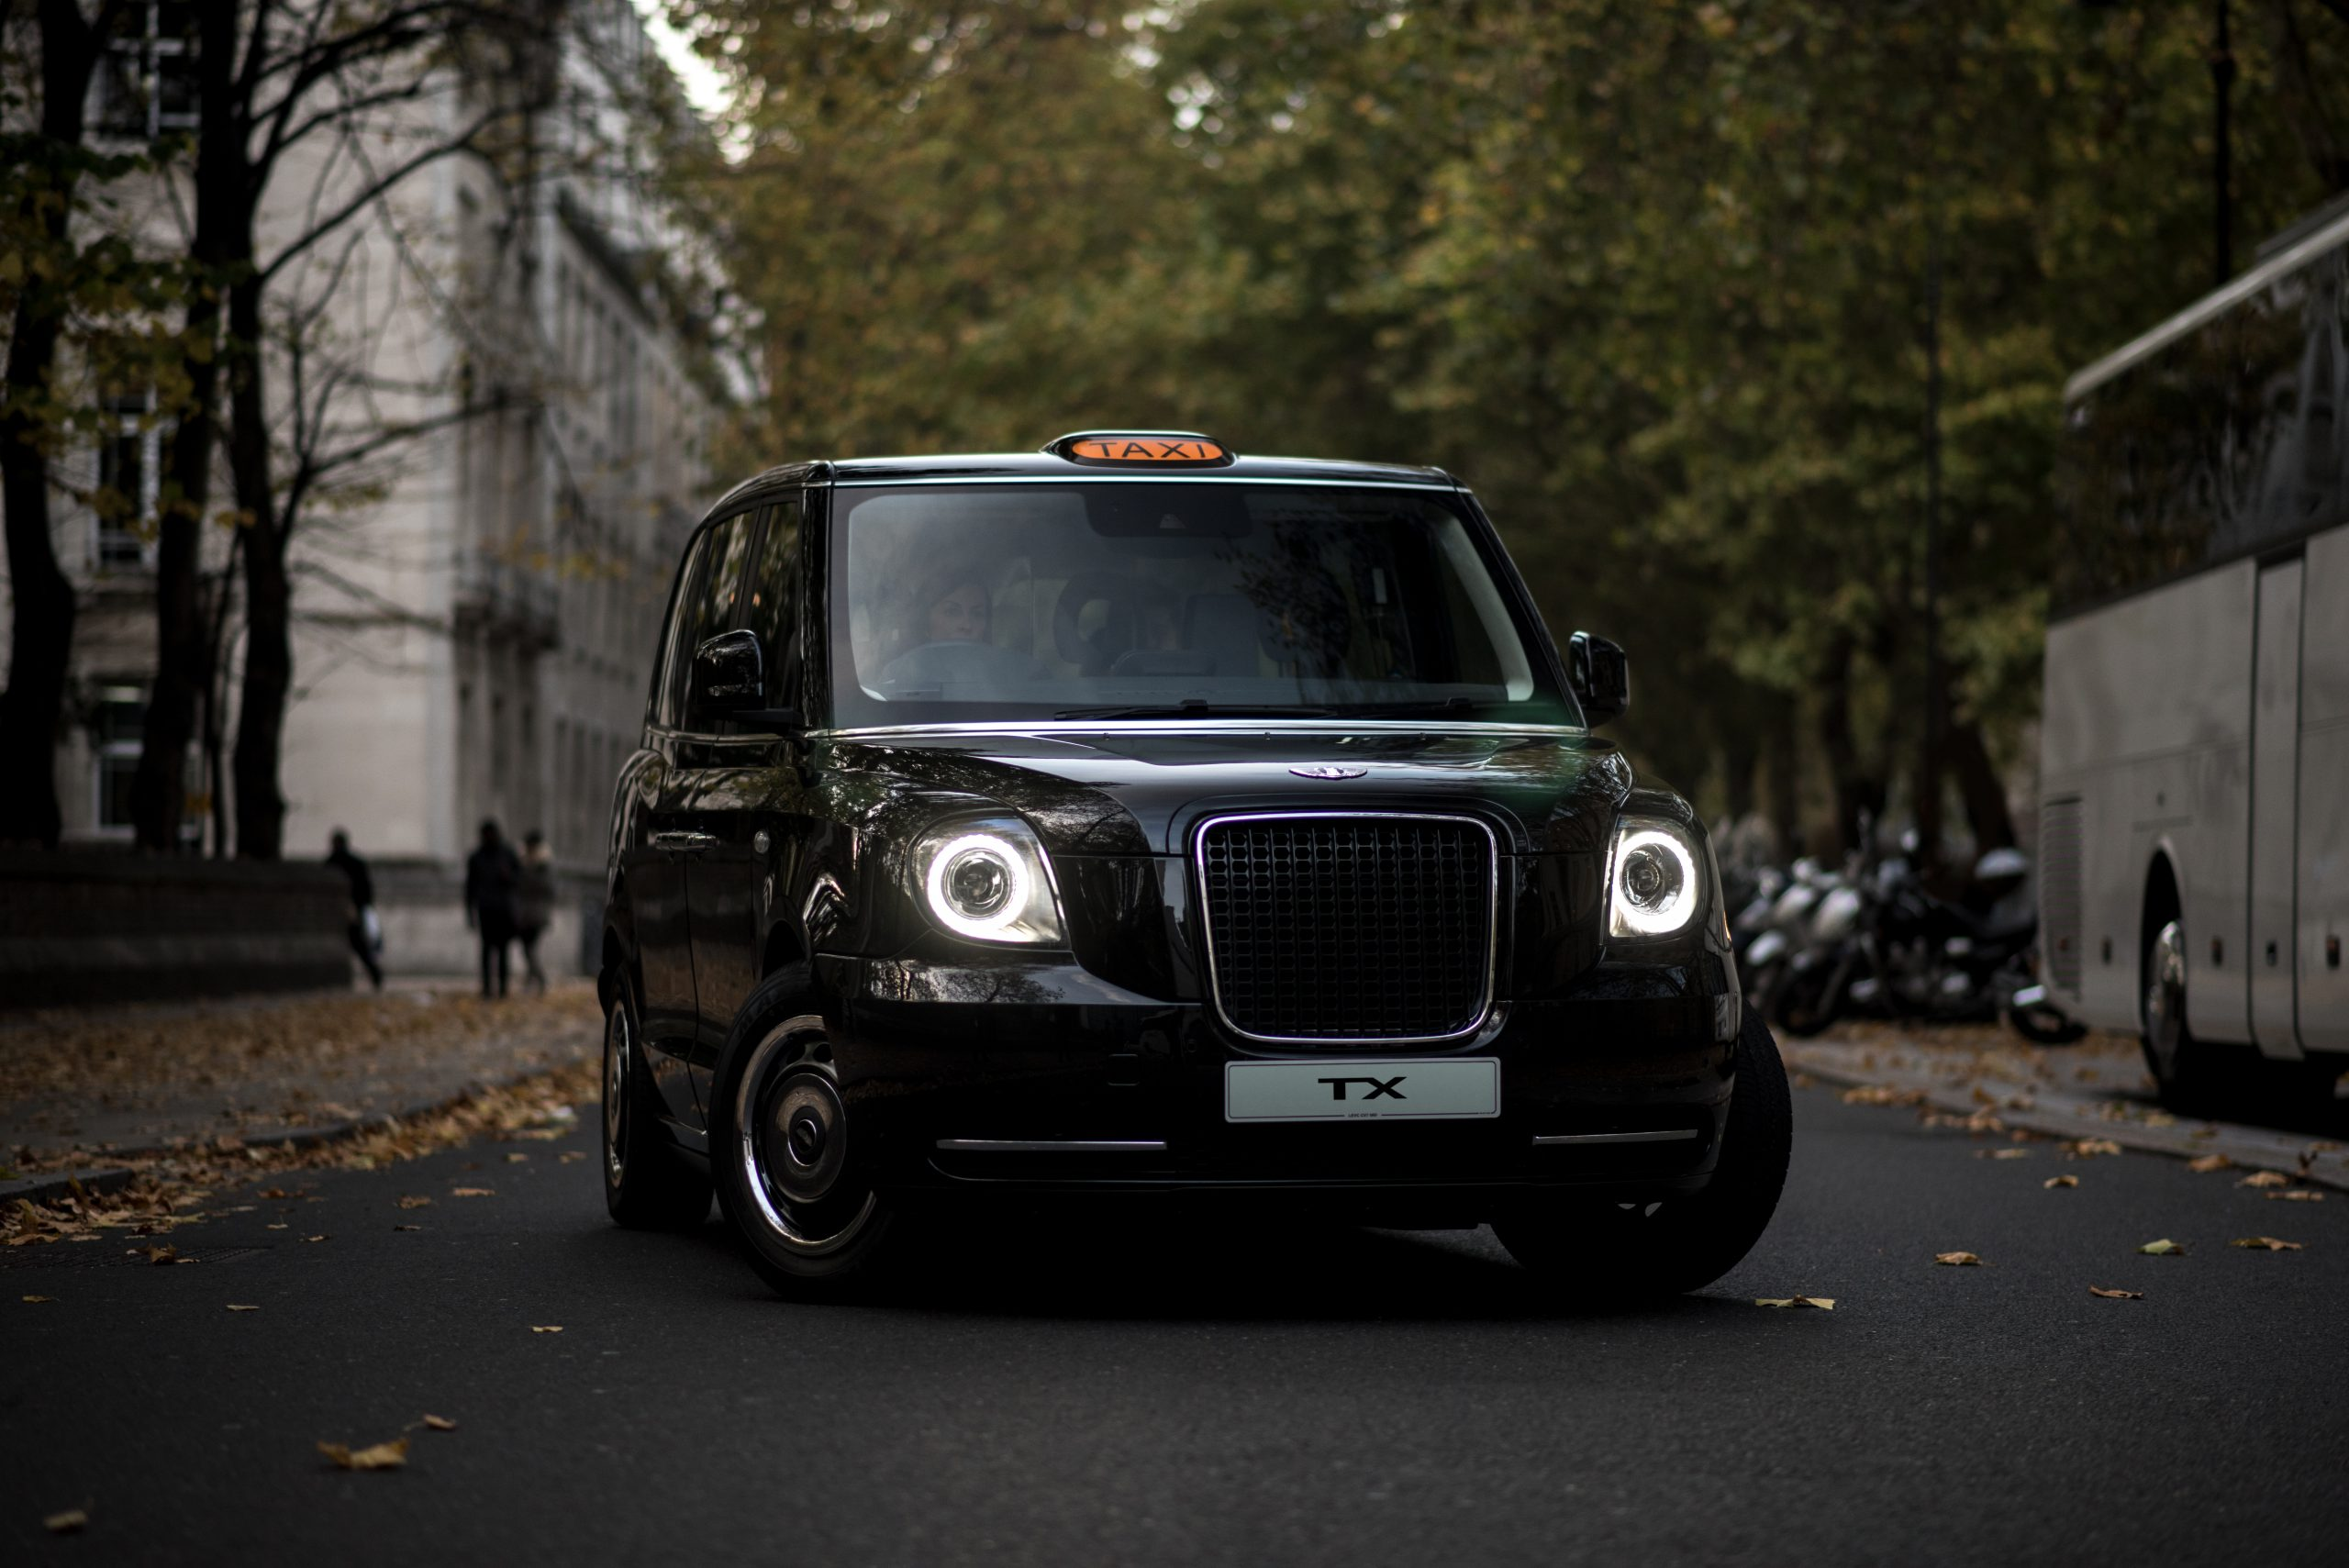 A black LEVC taxi with it's lights on